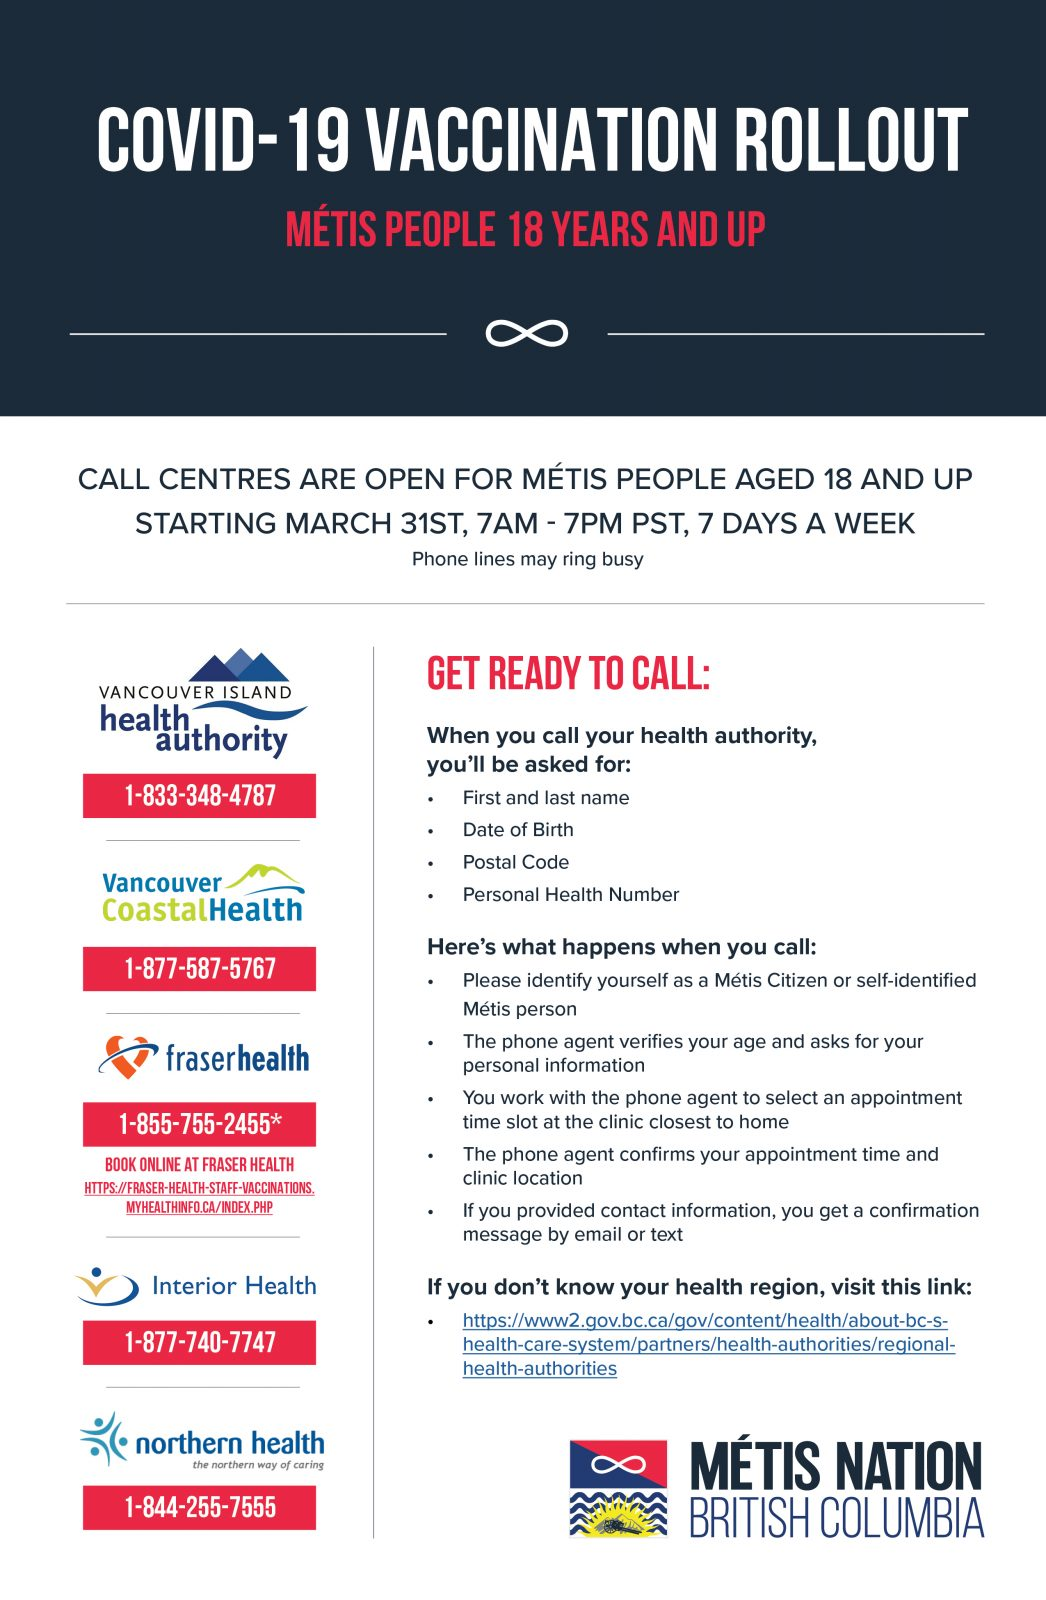 Covid-19 Vaccination RolloutMétis people 18 years and up. . Call centres are open for Métis people aged 18 and up, starting March 31st, 7am-7pm PST, 7 days a week.Phone lines may be busy. . Get Ready to Call: When you call your health authority, you'll be asked for: - First and last name - Date of Birth - Postal Code - Personal Health Number . Here's what happens when you call: - Please identify yourself as a Métis Citizen or self-identified Métis person - The phone agent verifies your age and asks for your personal information - You work with the phone agent to select an appointment time slot at the clinic closest to home - The phone agent confirms your appointment time and clinic location - If you provided contact information, you get a confirmation message by email or text . If you don't know your health region, visit this link:https://www.2.gov.bc.ca/.../regional-health-authorities . [Métis Nation of BC logo] [Down the left side of the poster are the various health region logos and contact info: . Vancouver Island Health Authority: 1-833-348-4787 . Vancouver Coastal Health: 1-877-587-5767 . Fraser Health: 1-855-755-2455* book online at Fraser Health:https://www.fraserhealth.ca/.../coron.../covid-19-vaccine... [please note: i wasn't able to clearly see the link on the poster, everything i typed just said it wasn't right; so i went to the Fraser Health region website vaccination page] . Interior Health: 1-877-740-7747 . Northern Health — the northern way of caring: 1-844-255-7555